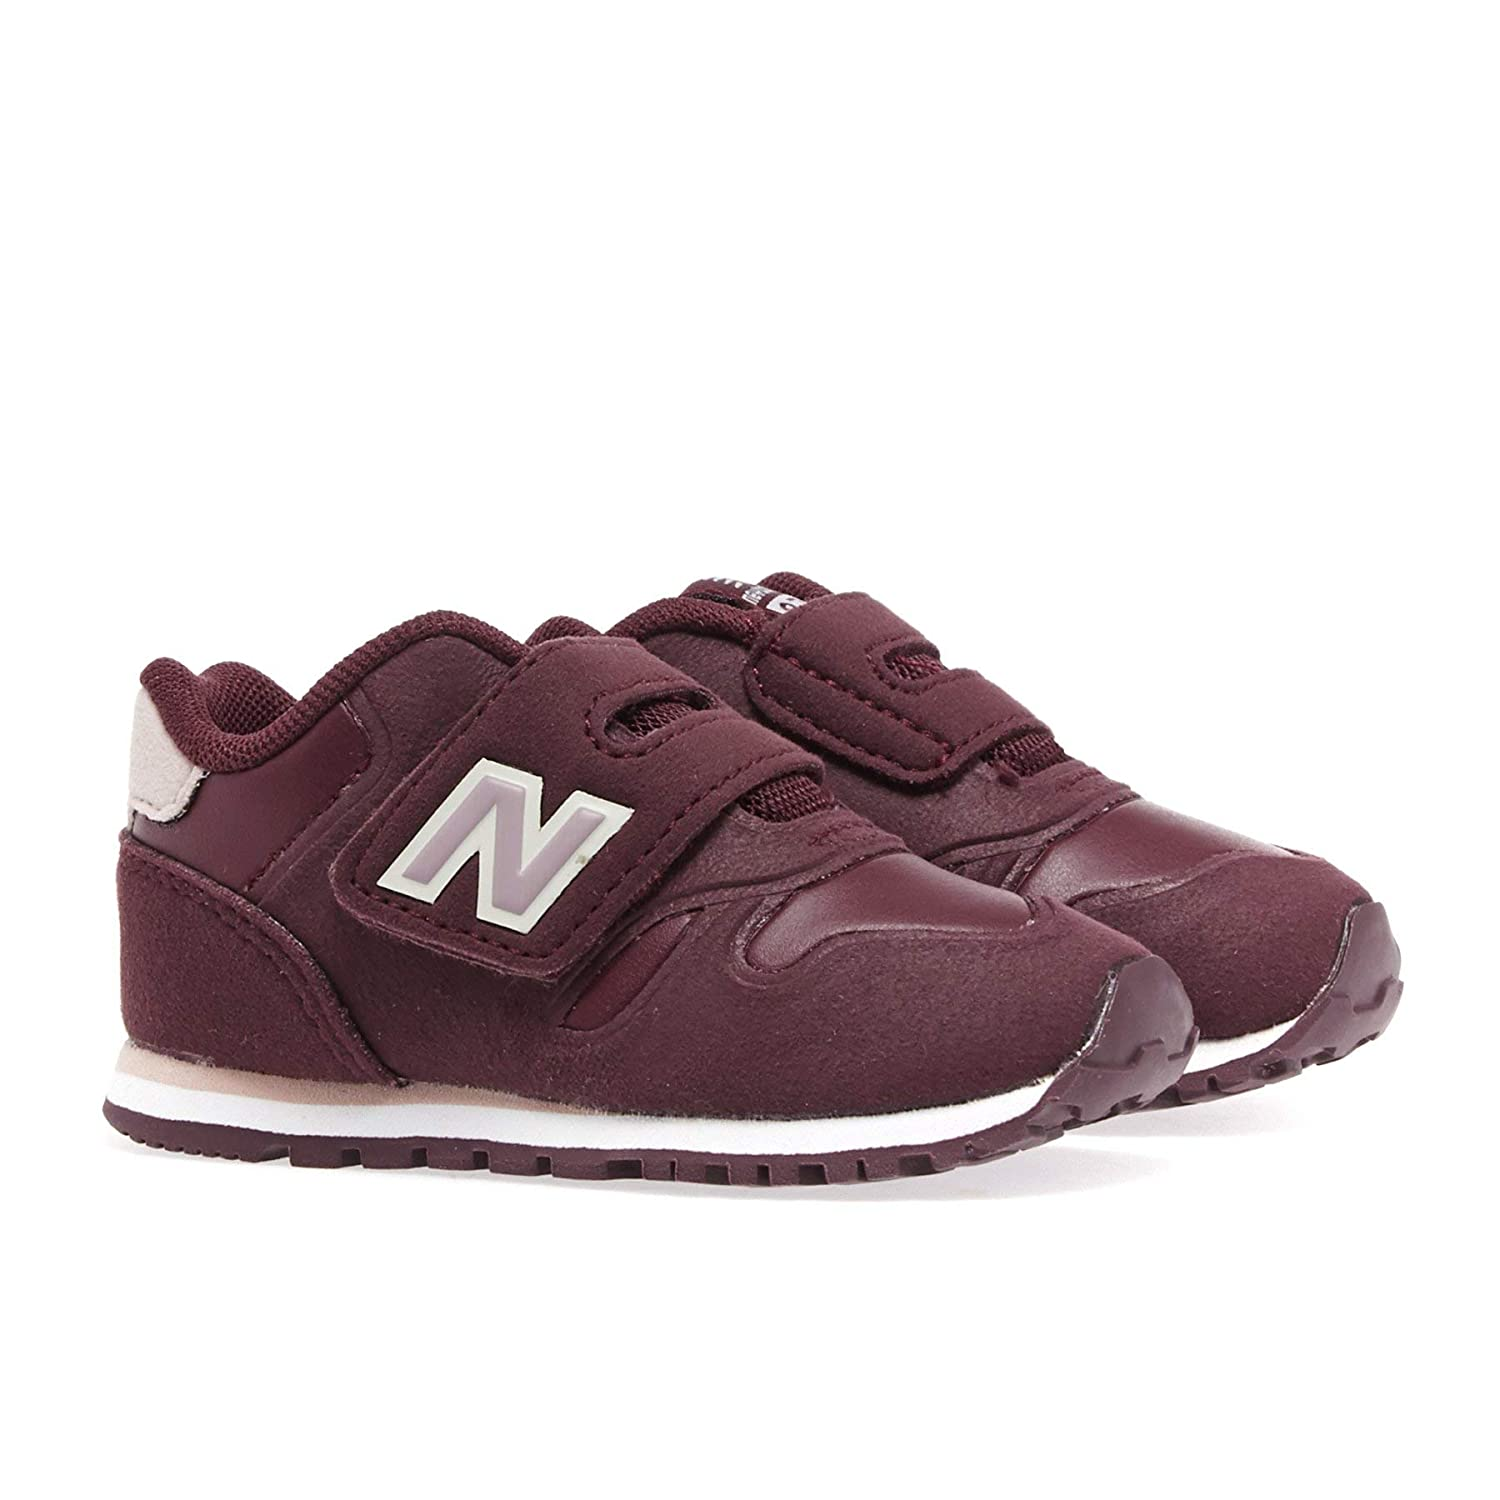 new product db77d 08cb1 New Balance Infant 373 Velcro Kids Shoes UK 4.5 (Toddler ...